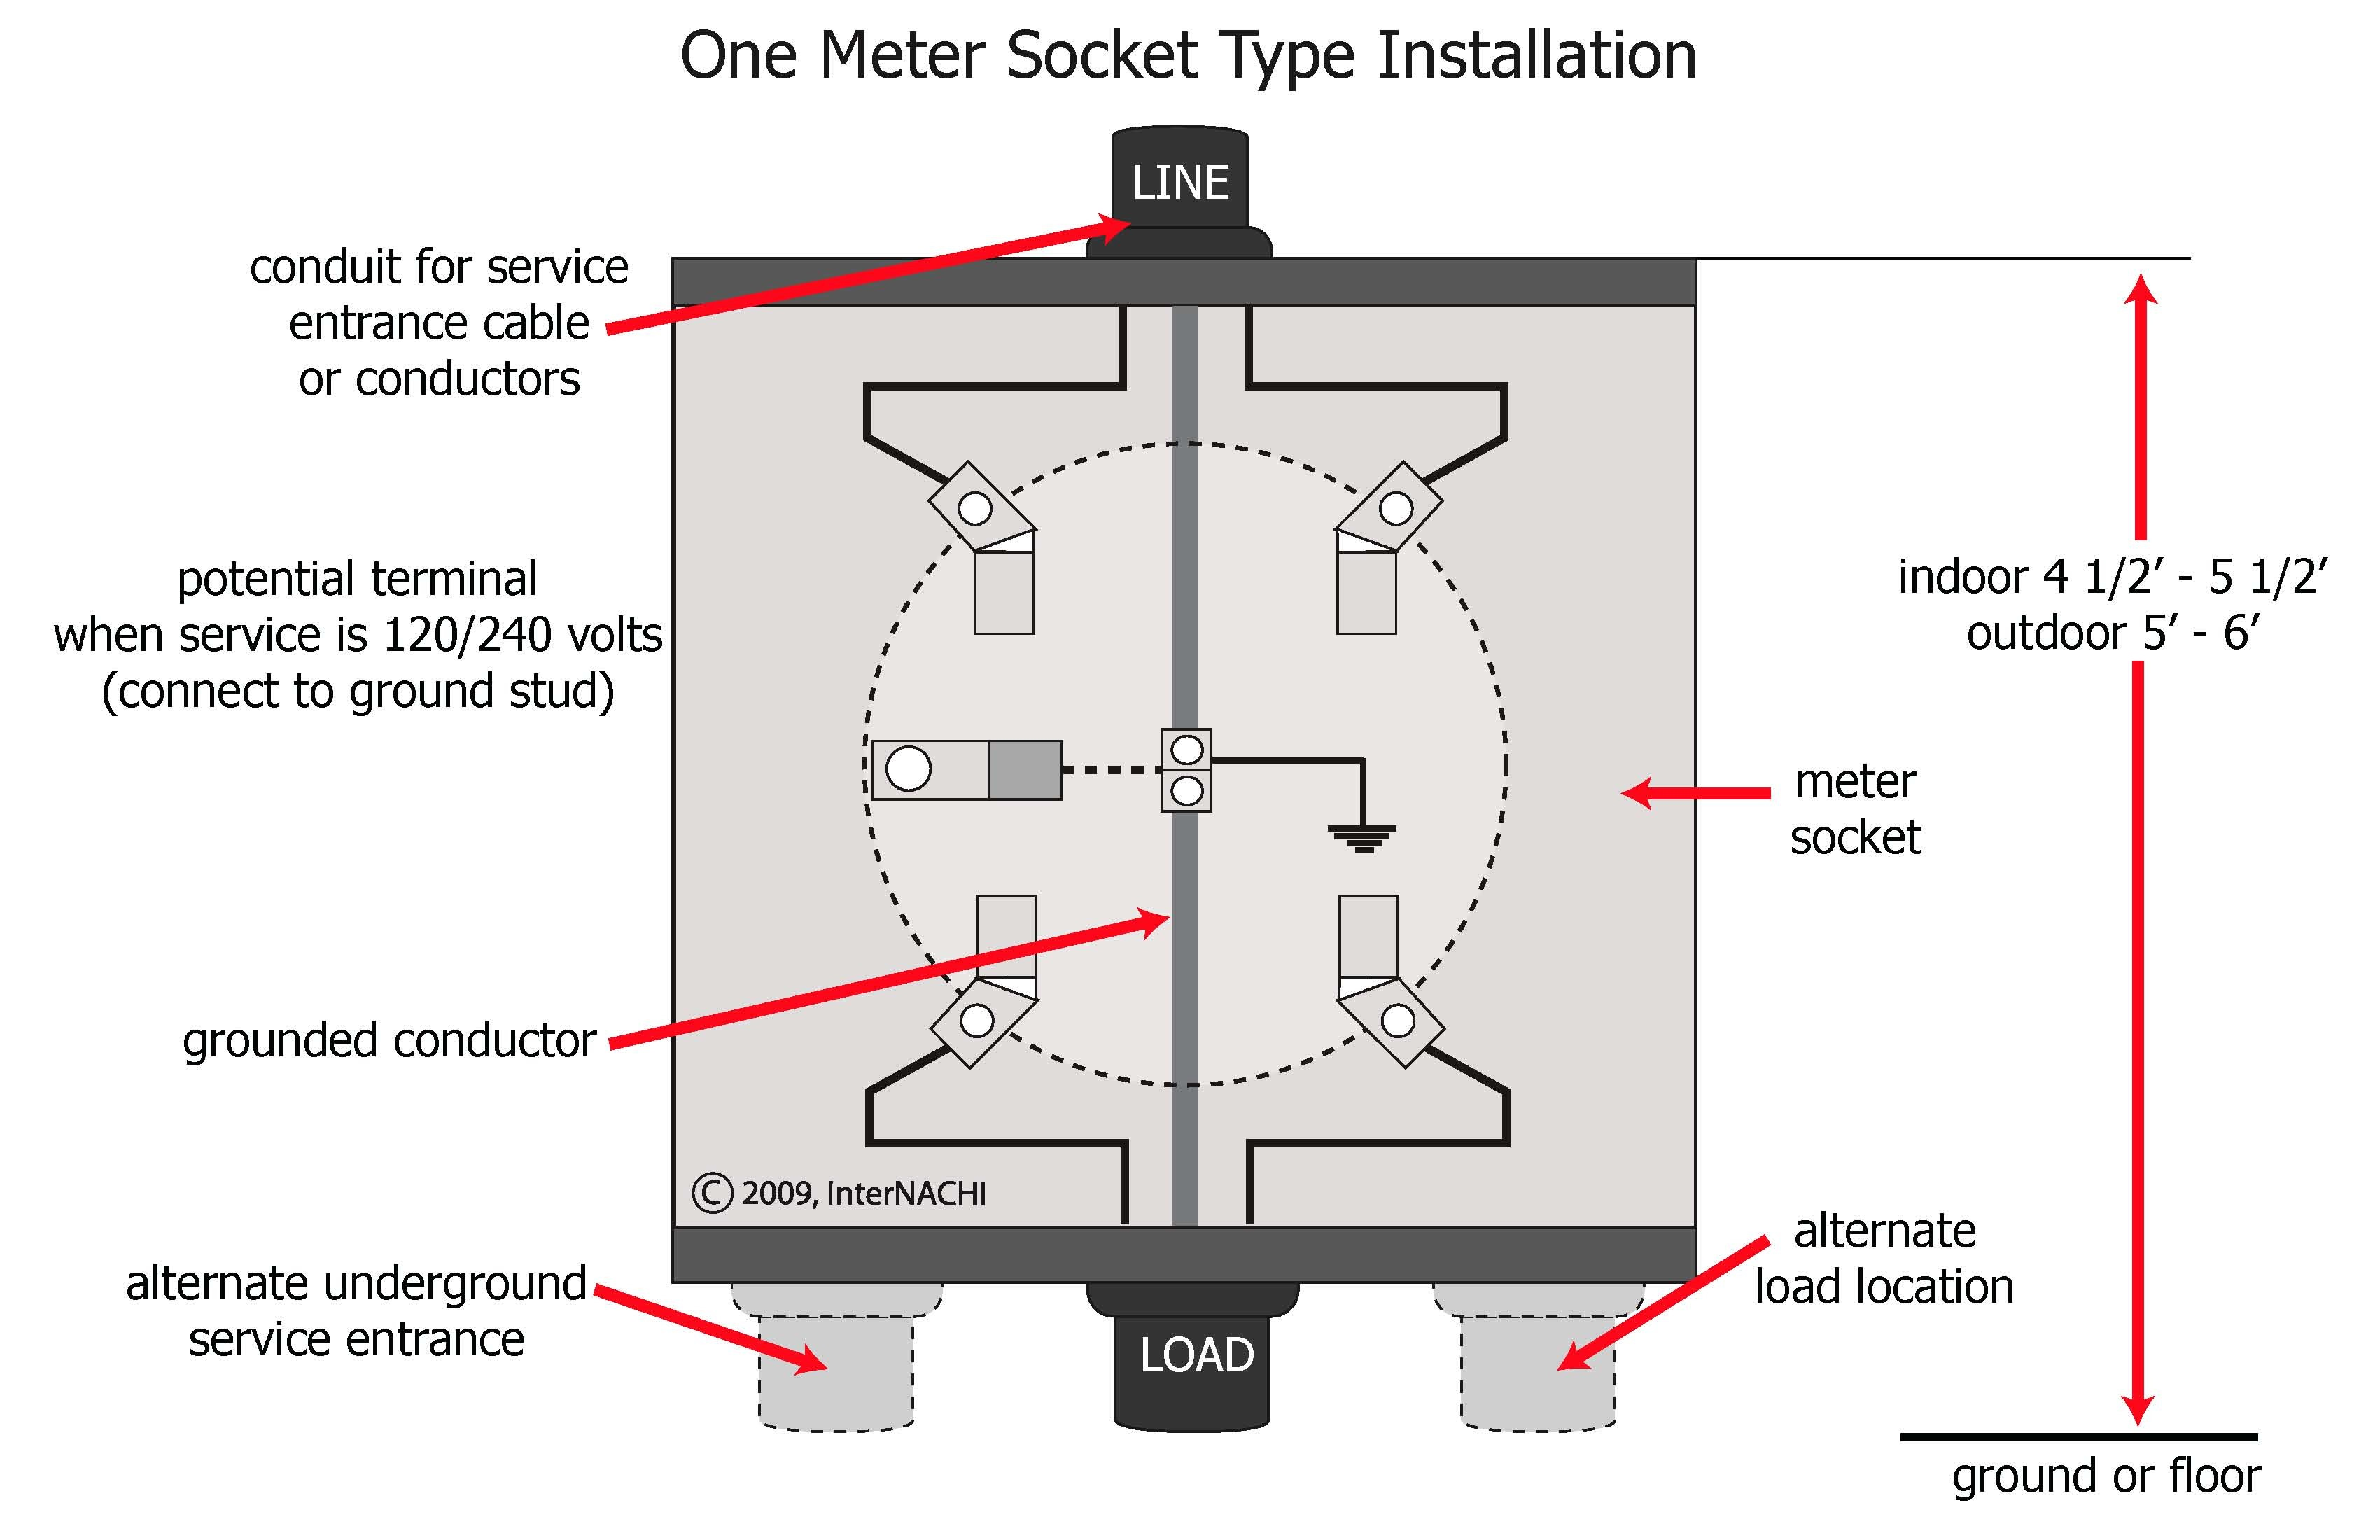 meter socket index of gallery images electrical service meter socket diagram at crackthecode.co